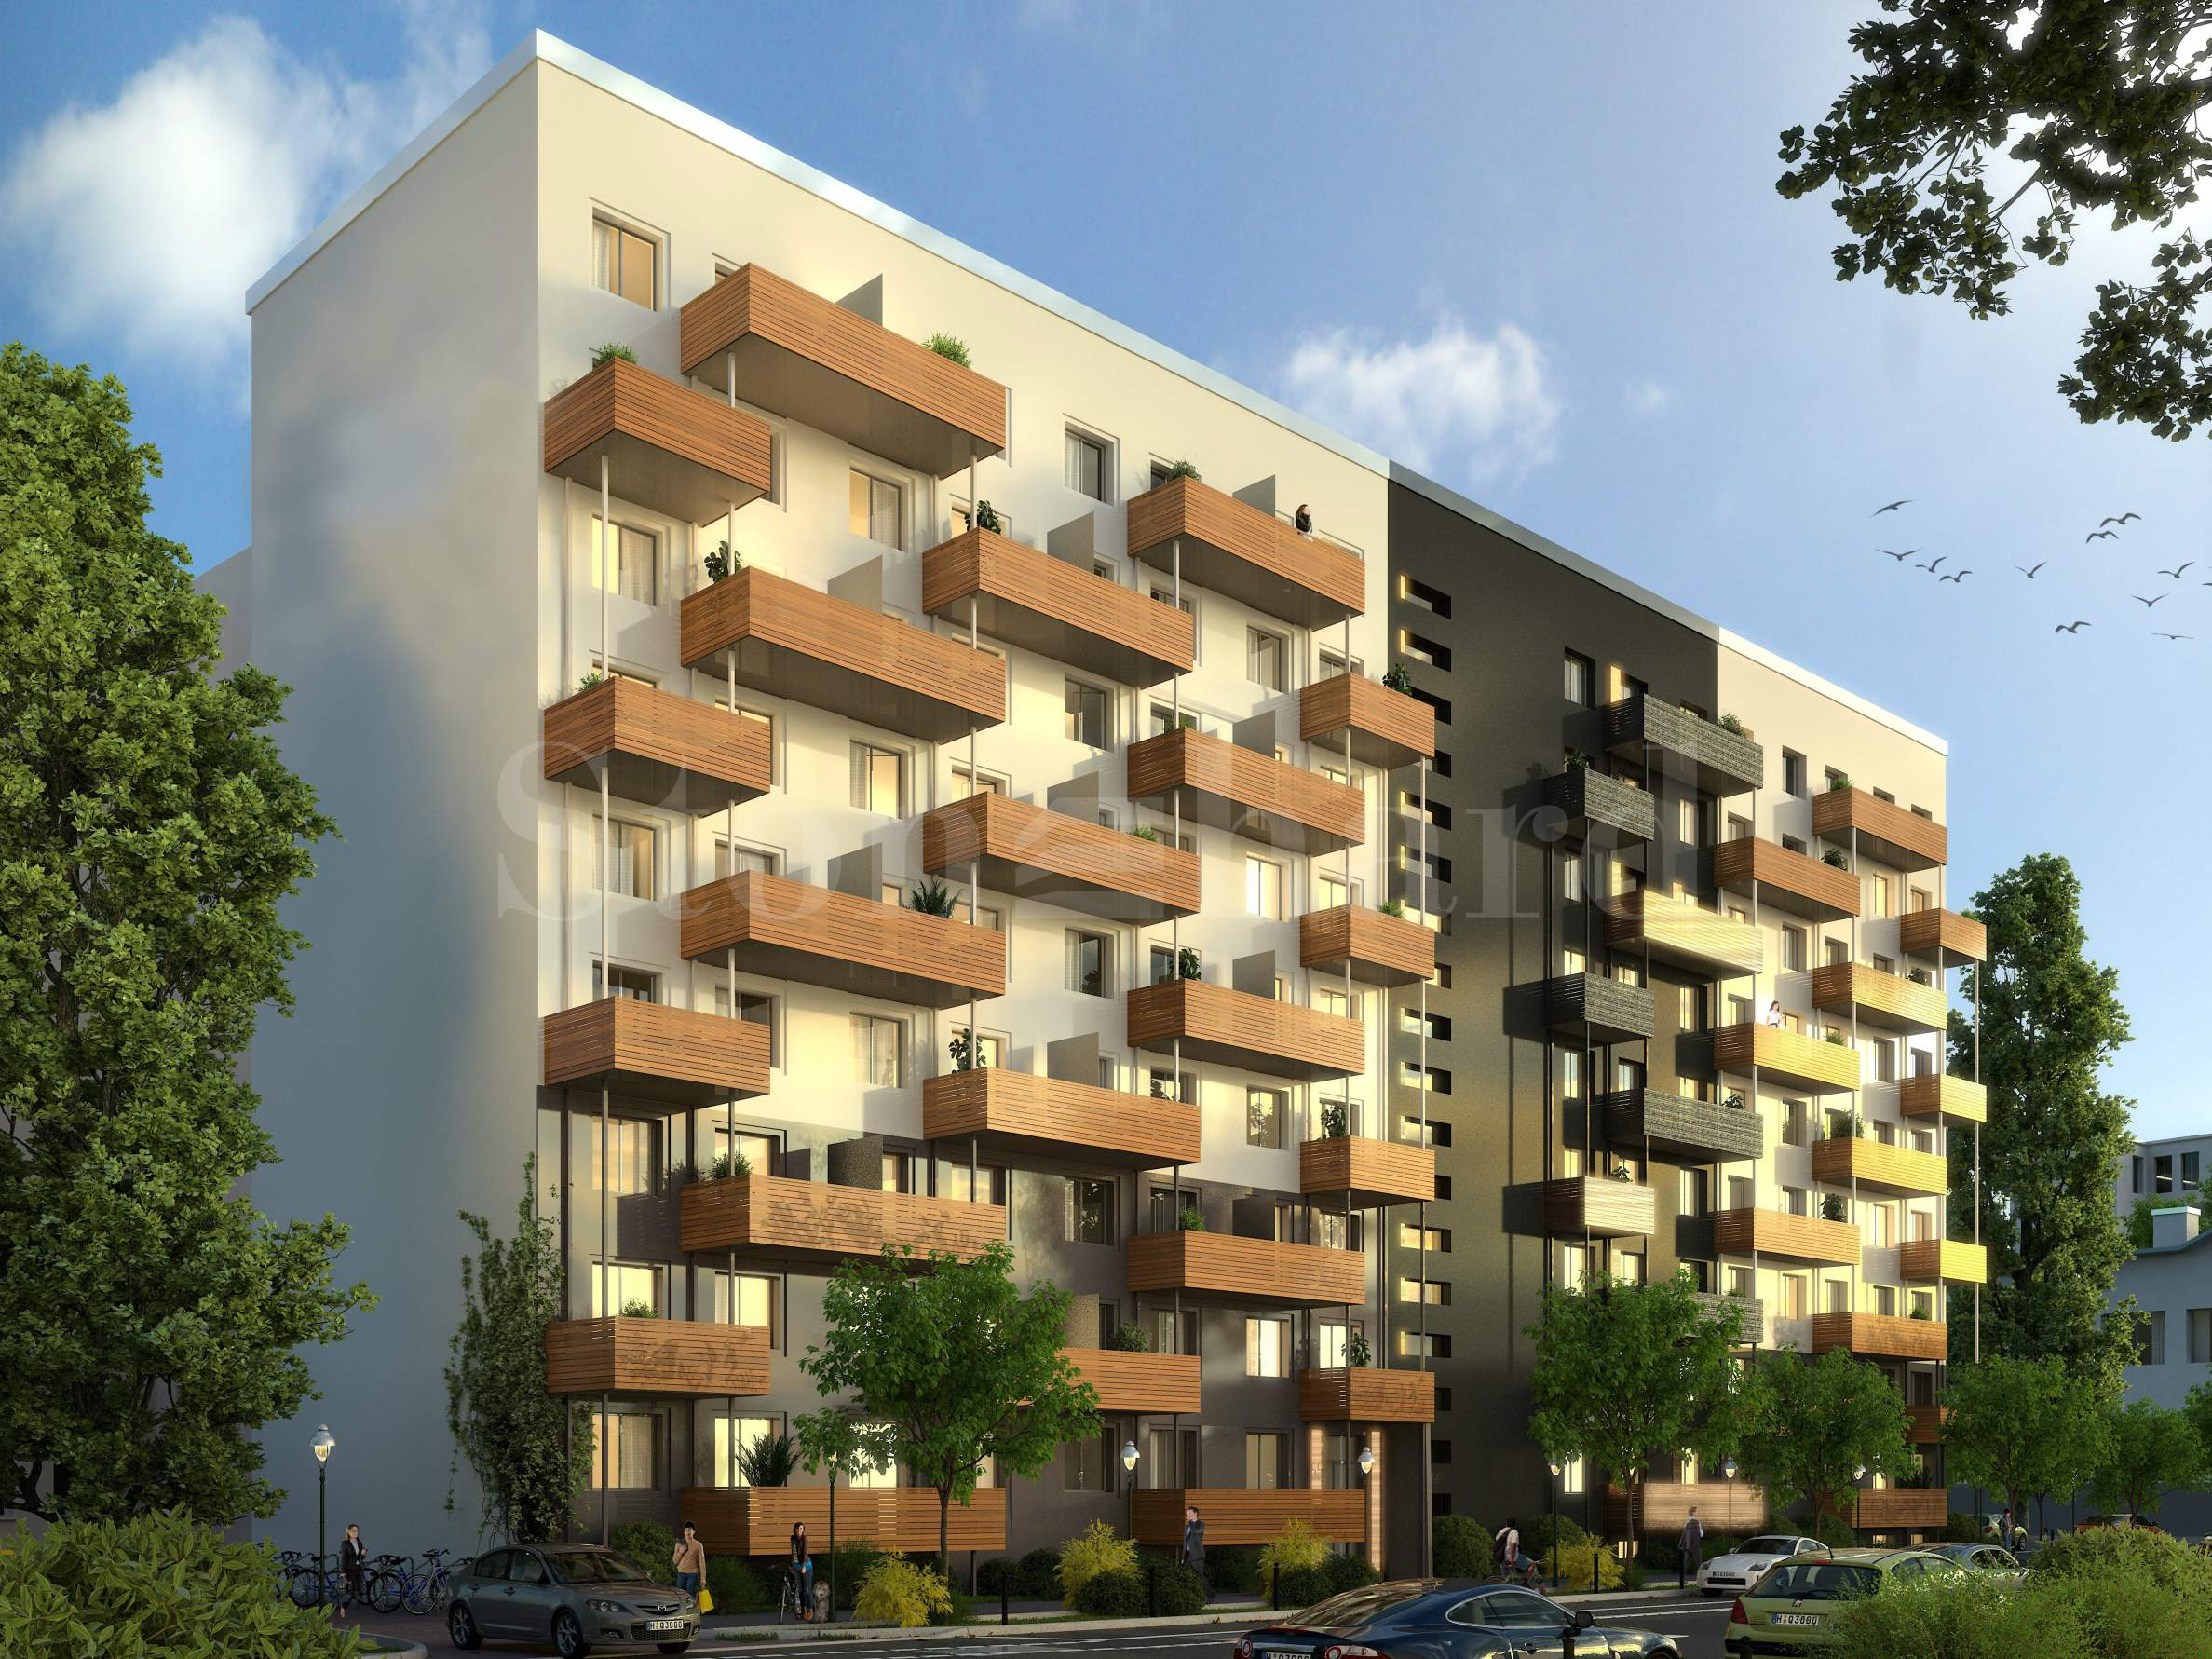 Investment apartments in Berlin-Mitte, Germany1 - Stonehard